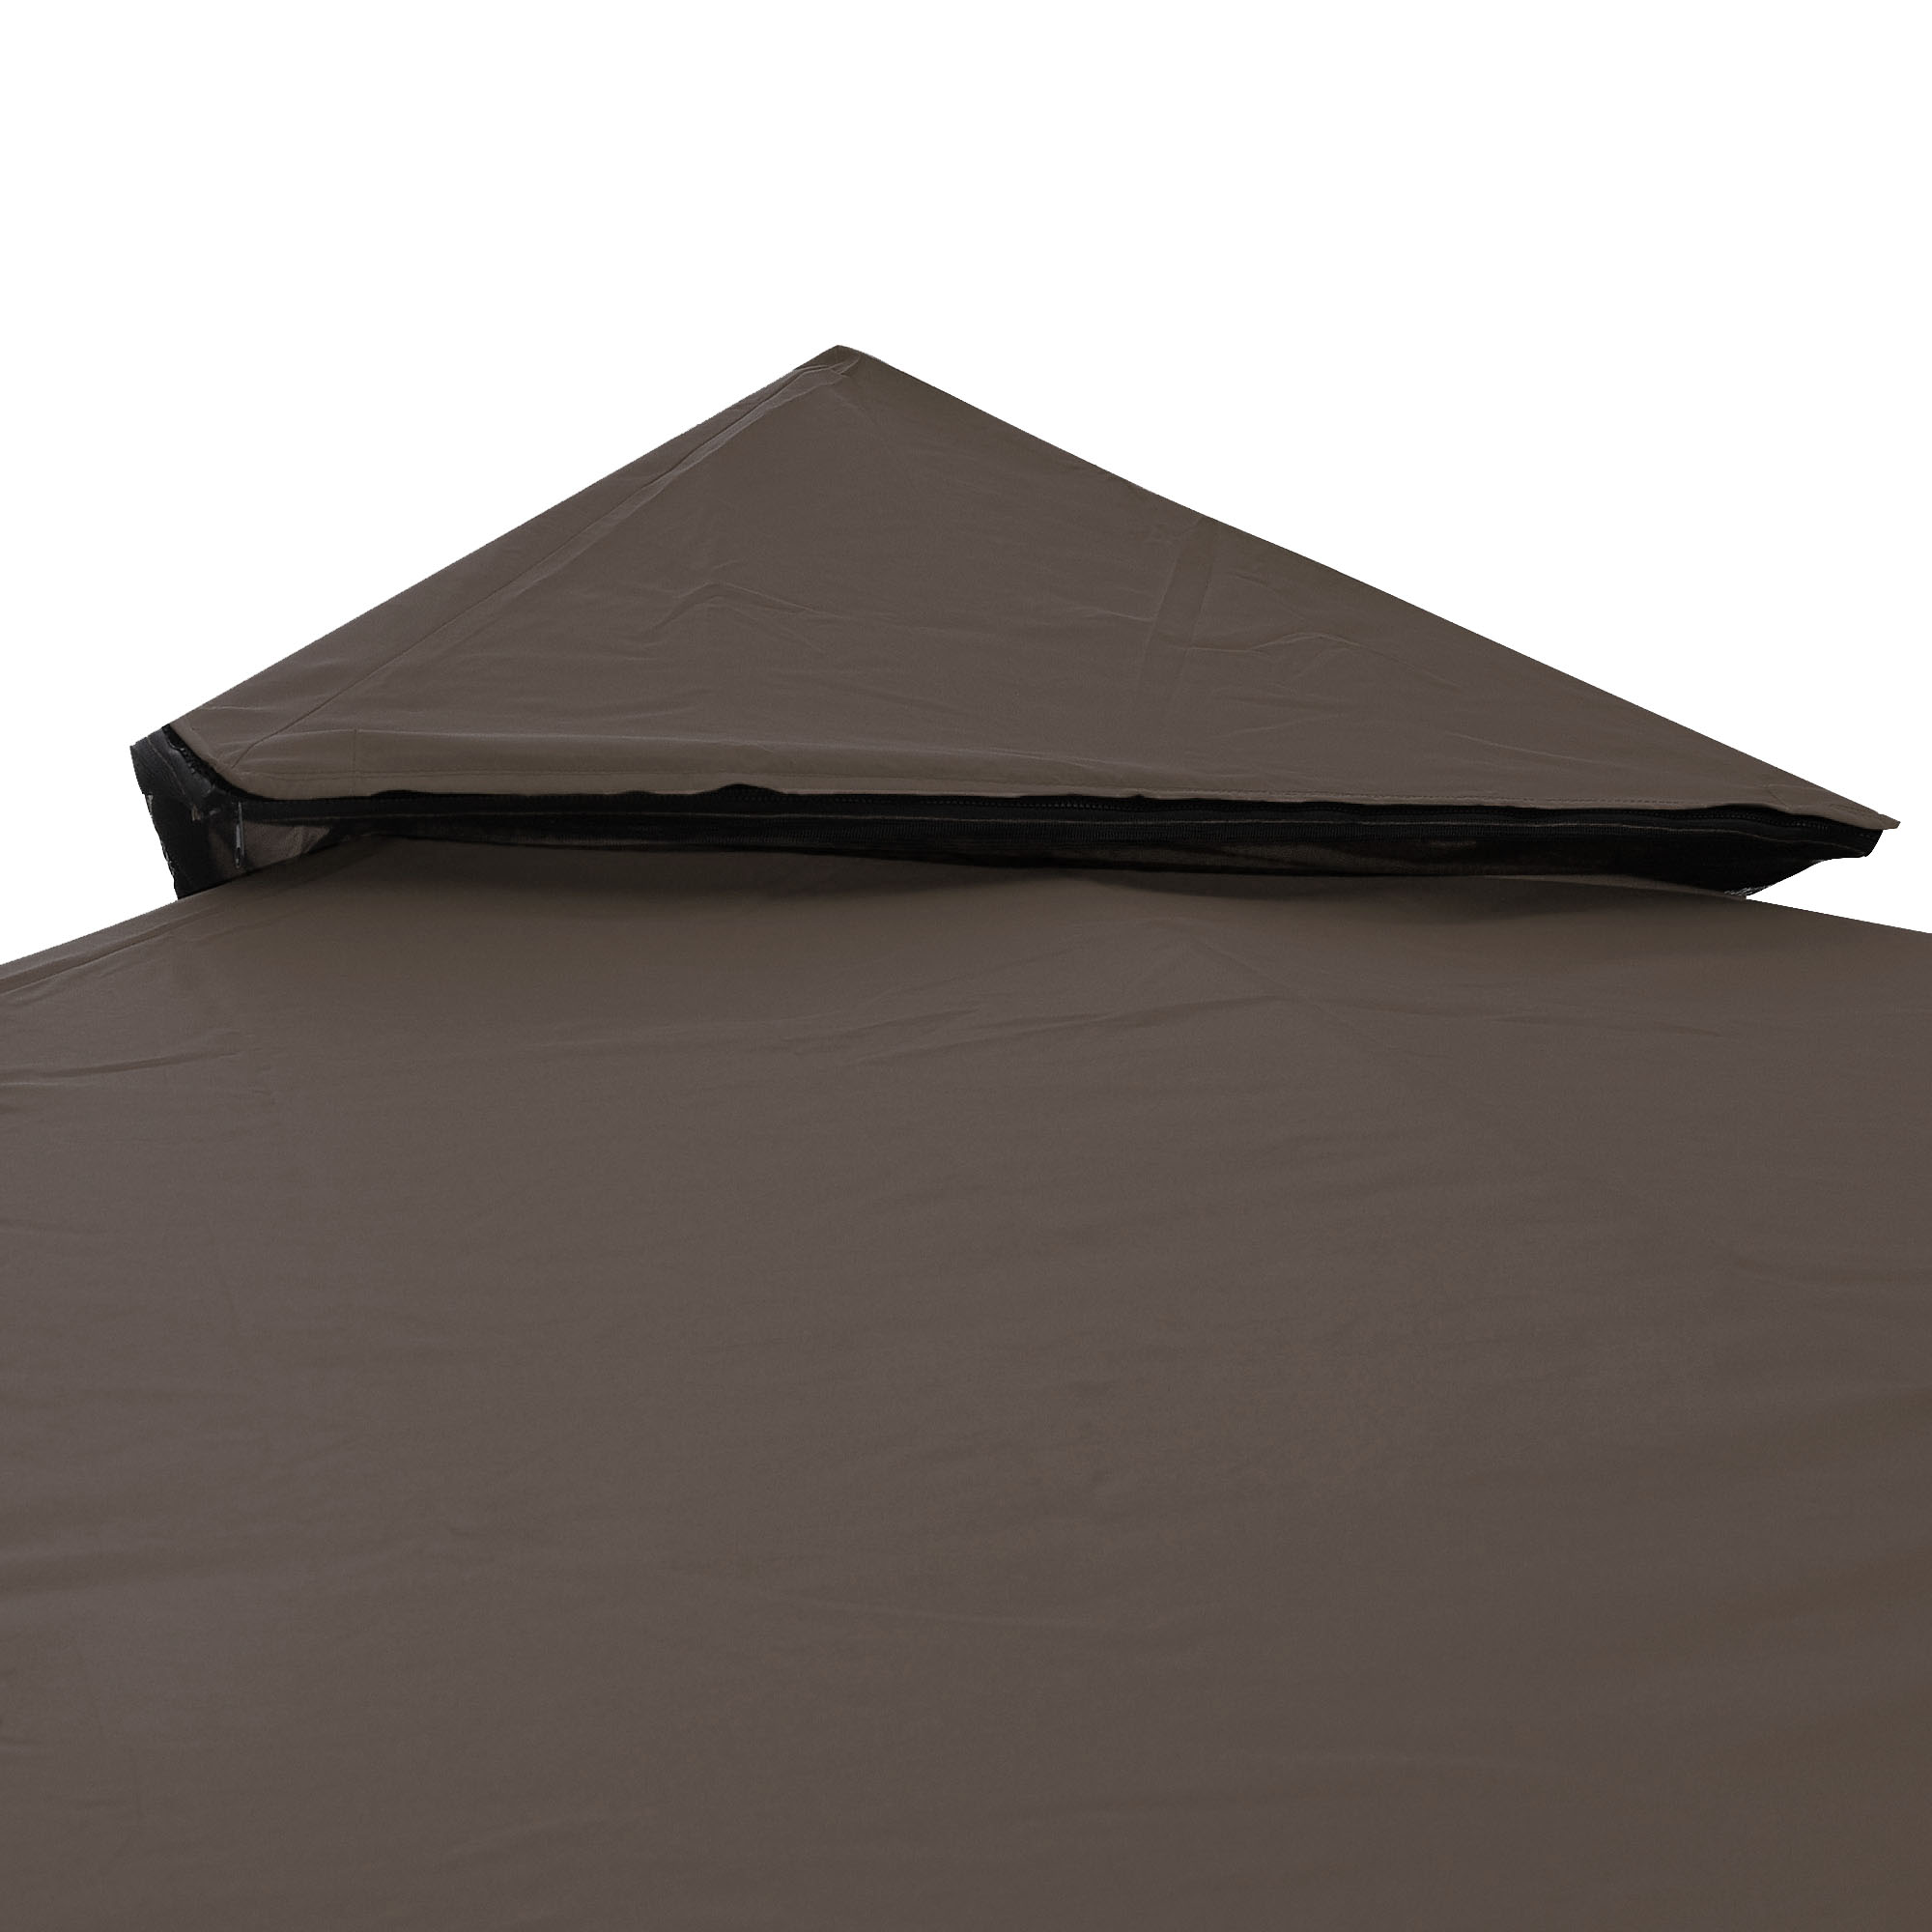 8x8-039-10x10-039-12x12-039-Gazebo-Top-Canopy-Replacement-UV30-Patio-Outdoor-Garden-Cover thumbnail 27